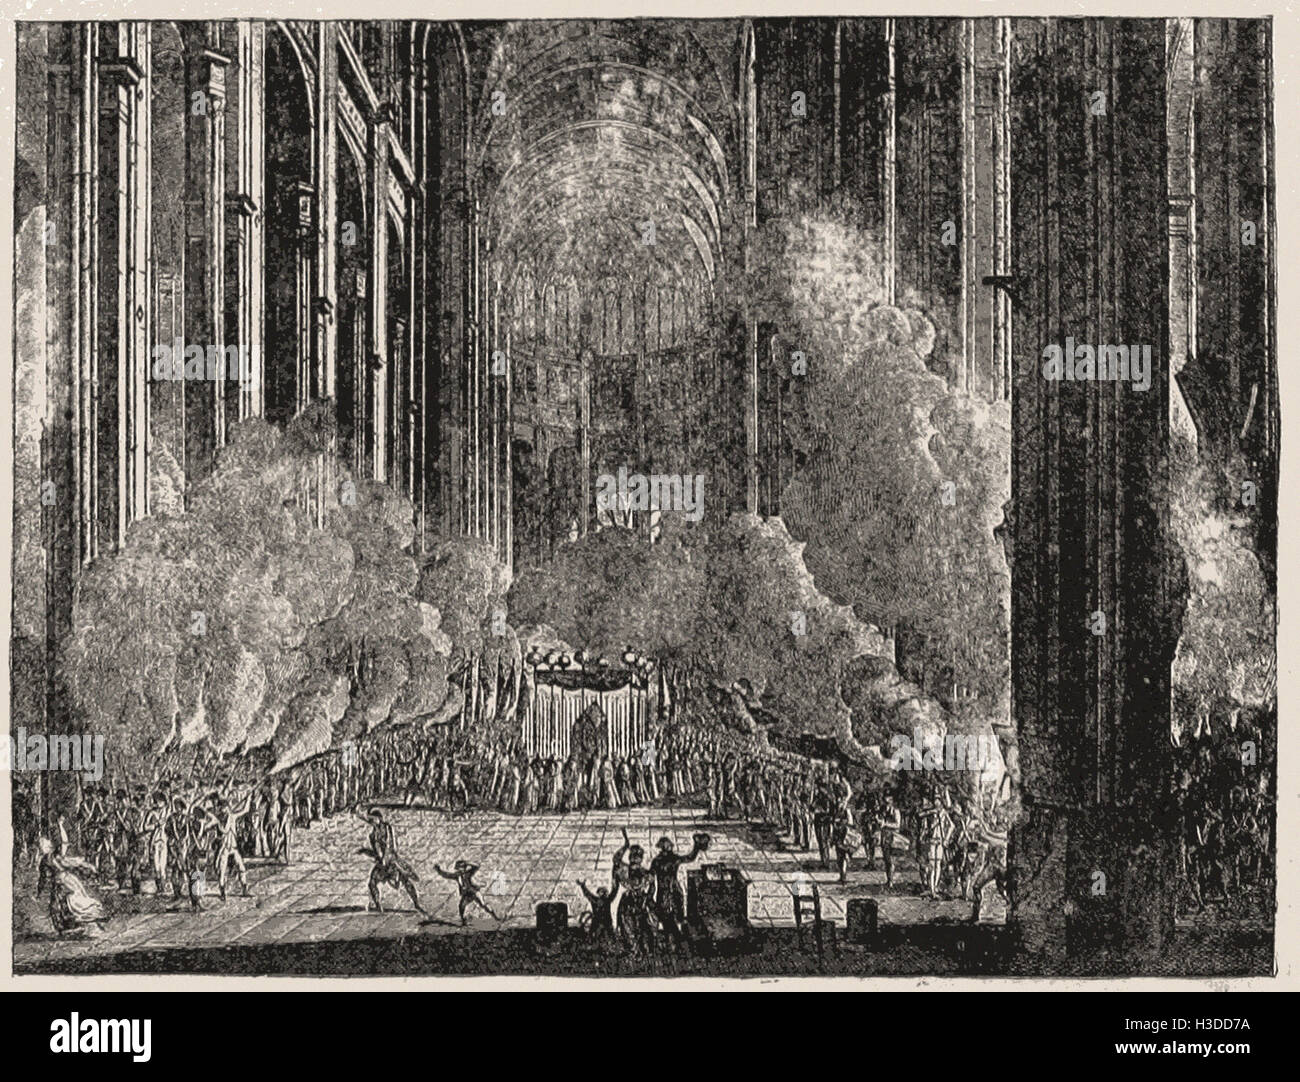 SECOND PART OF THE GRAND CEREMONIES AT NOTRE DAME IN PARIS - Stock Image